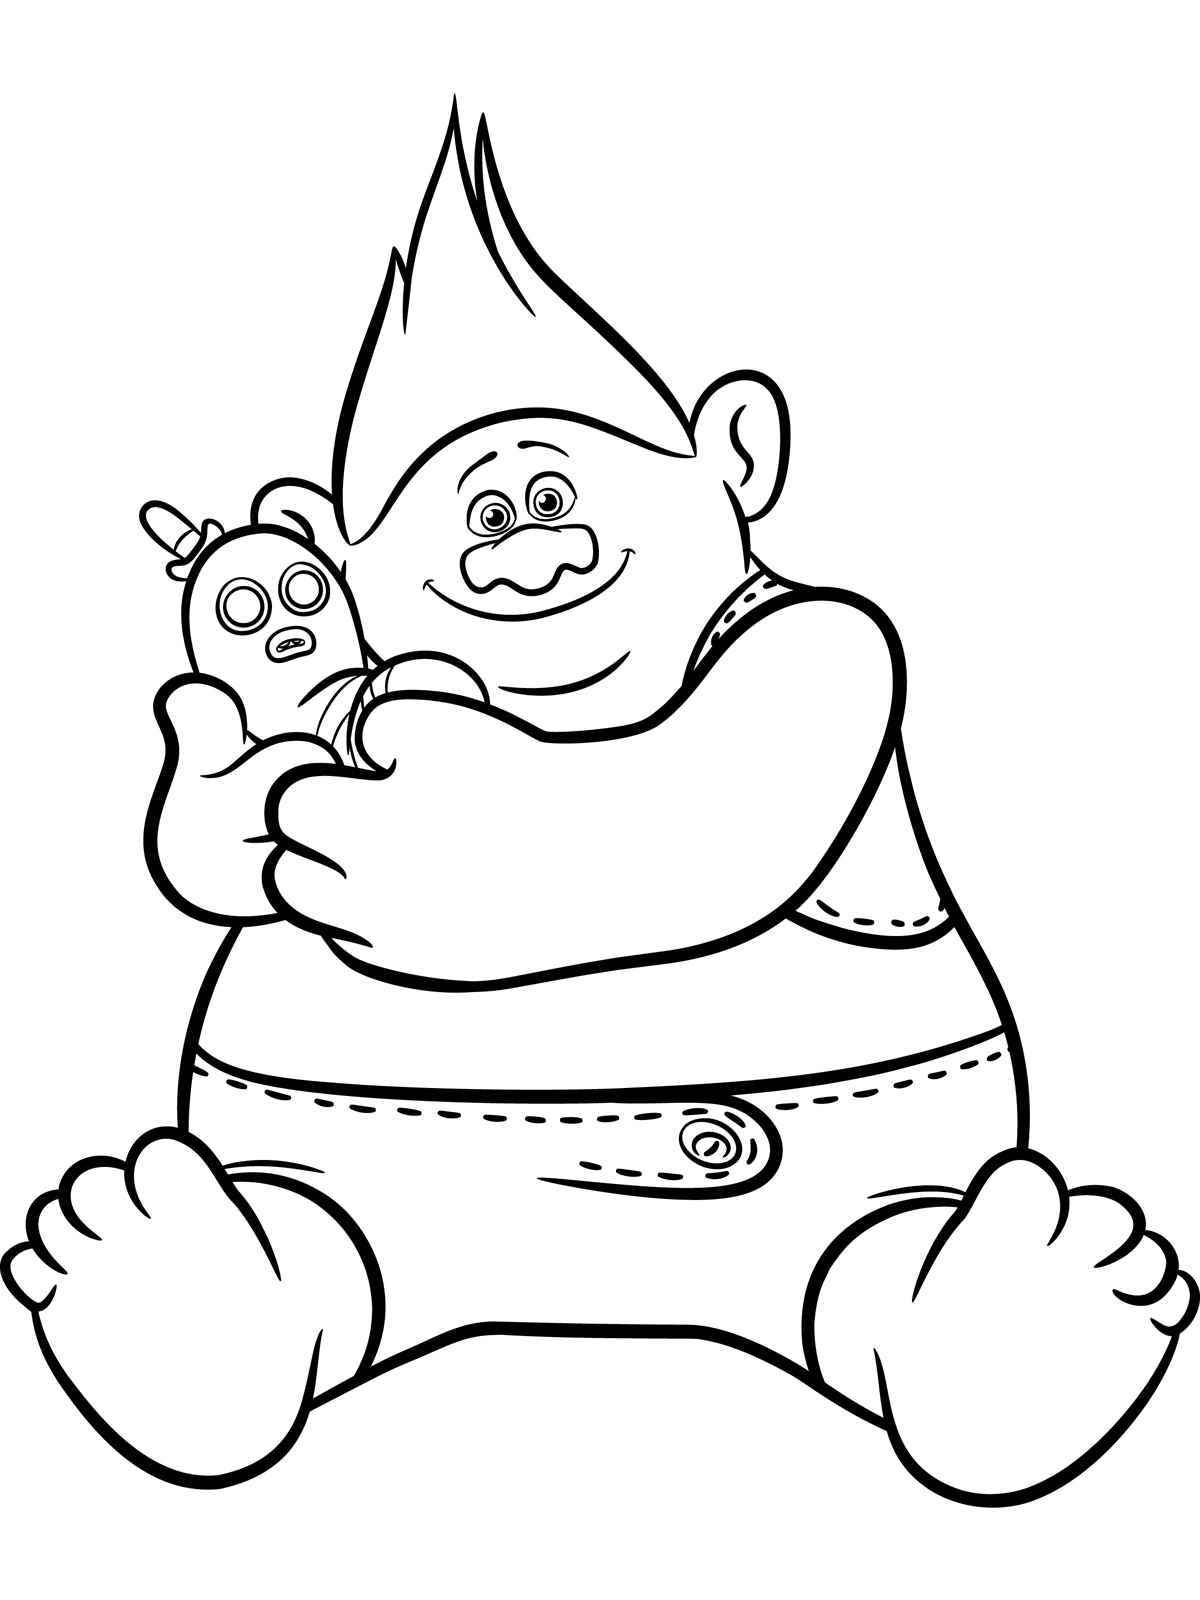 Magic image with regard to trolls printable coloring pages